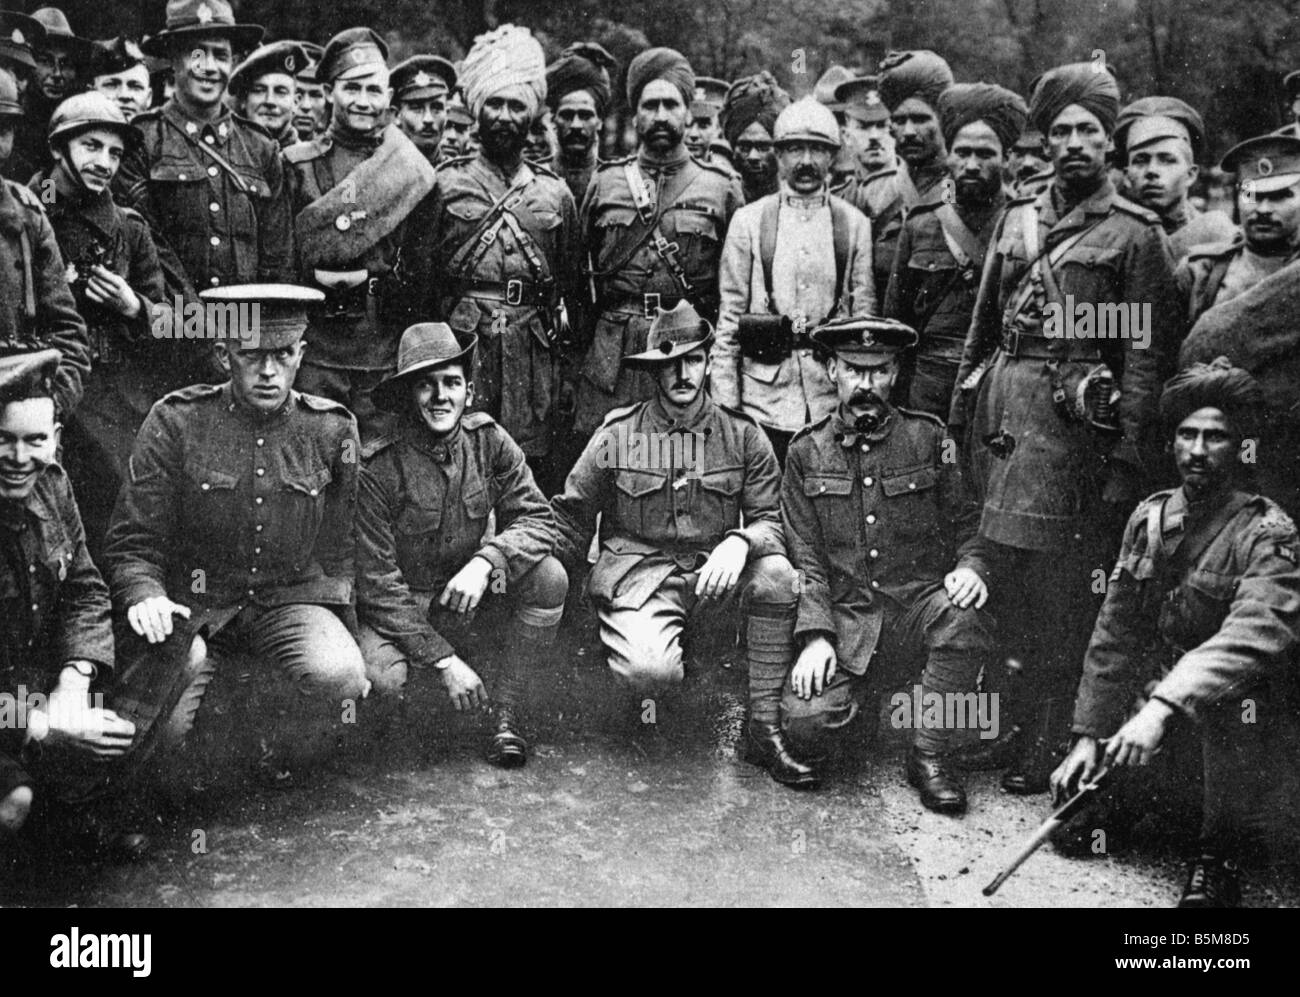 2 G55 F1 1916 24 E Entente soldiers Paris 14 July 1916 History World War I France The 14th of July Paris in 1916 Stock Photo